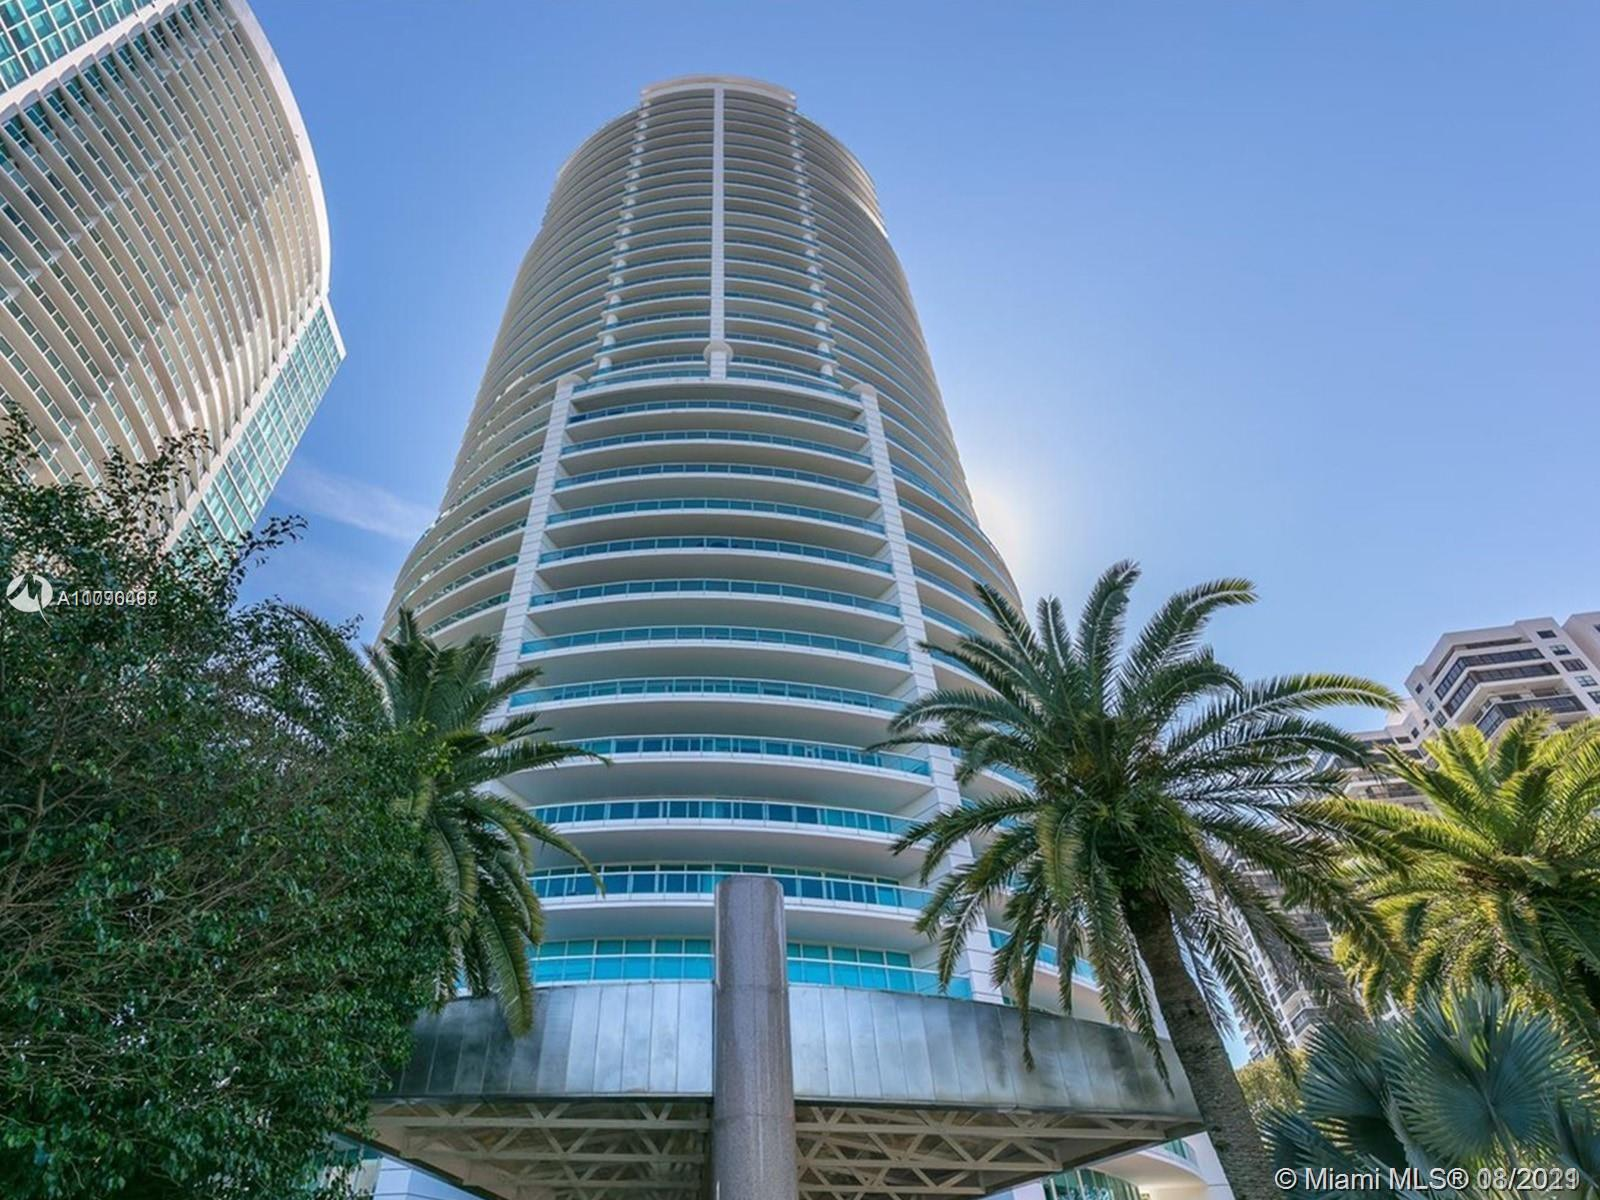 Enjoy the quality of this Ugo Colombo signature tower. Architect was Luis Revuelta who has designed